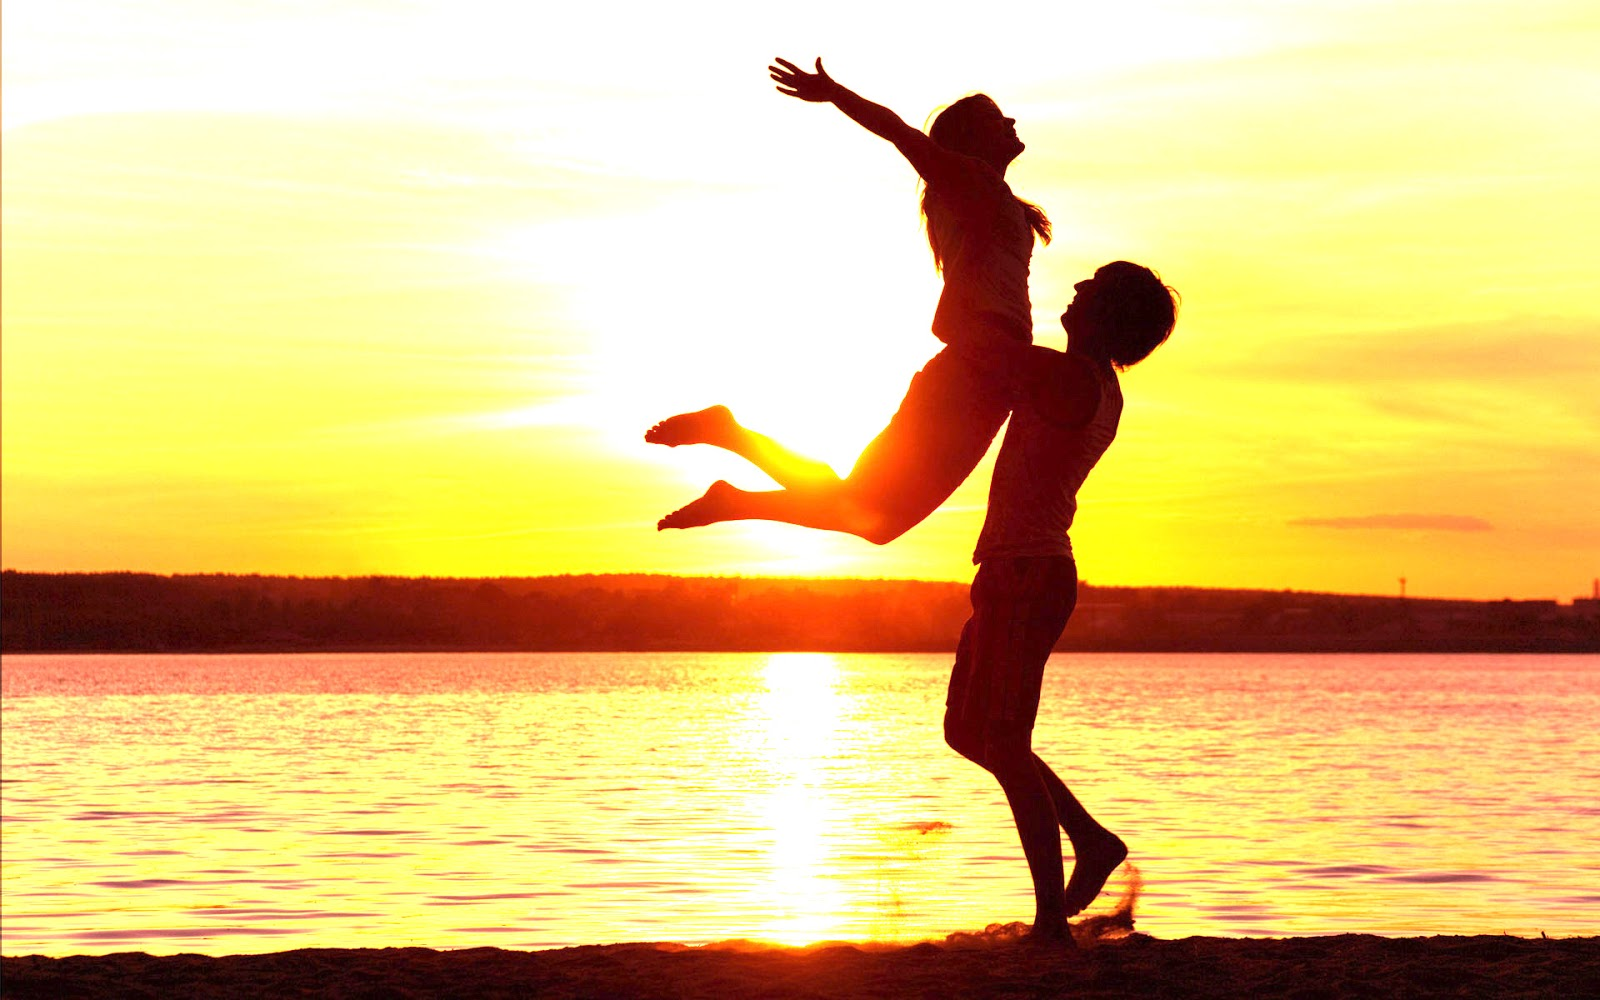 Ways to win back your ex boyfriend, love spell to bring back